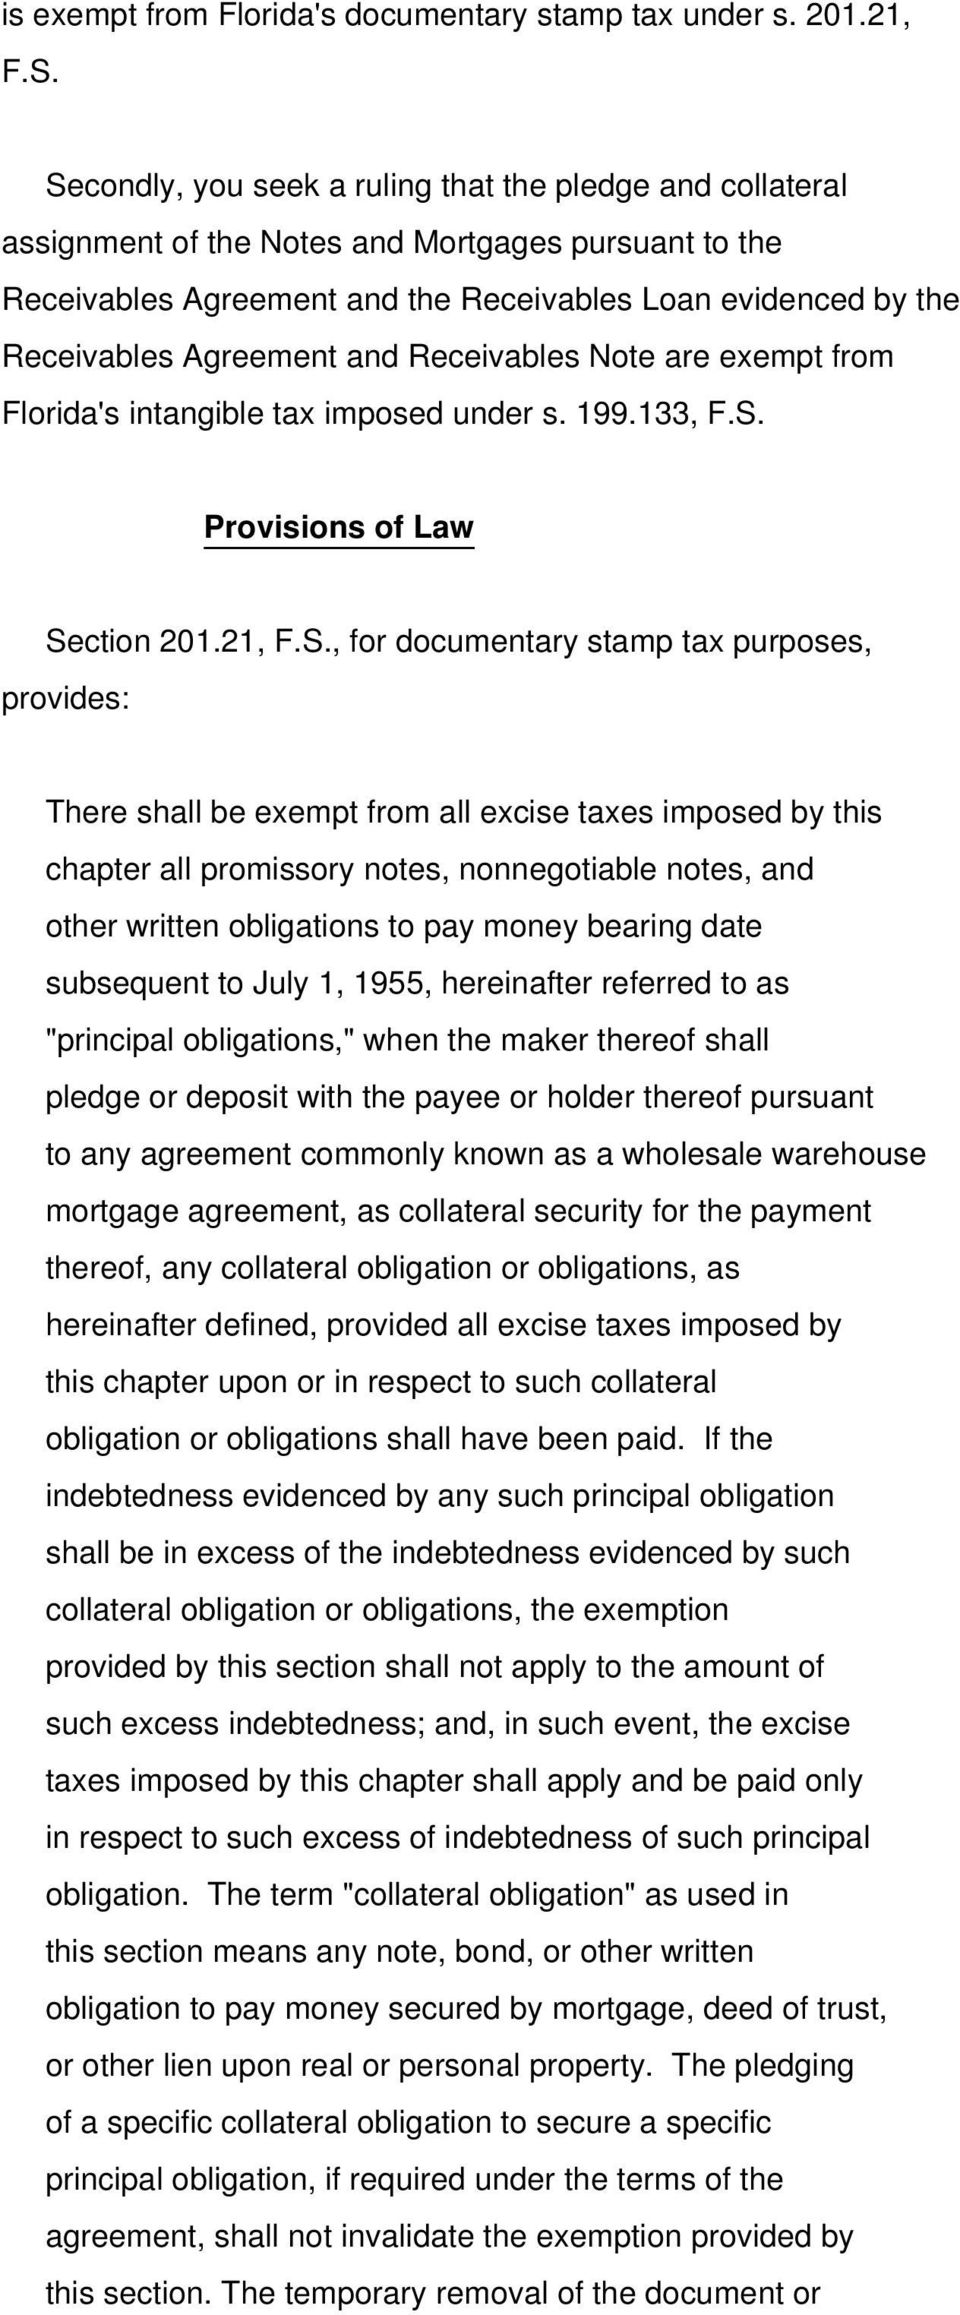 and Receivables Note are exempt from Florida's intangible tax imposed under s. 199.133, F.S.